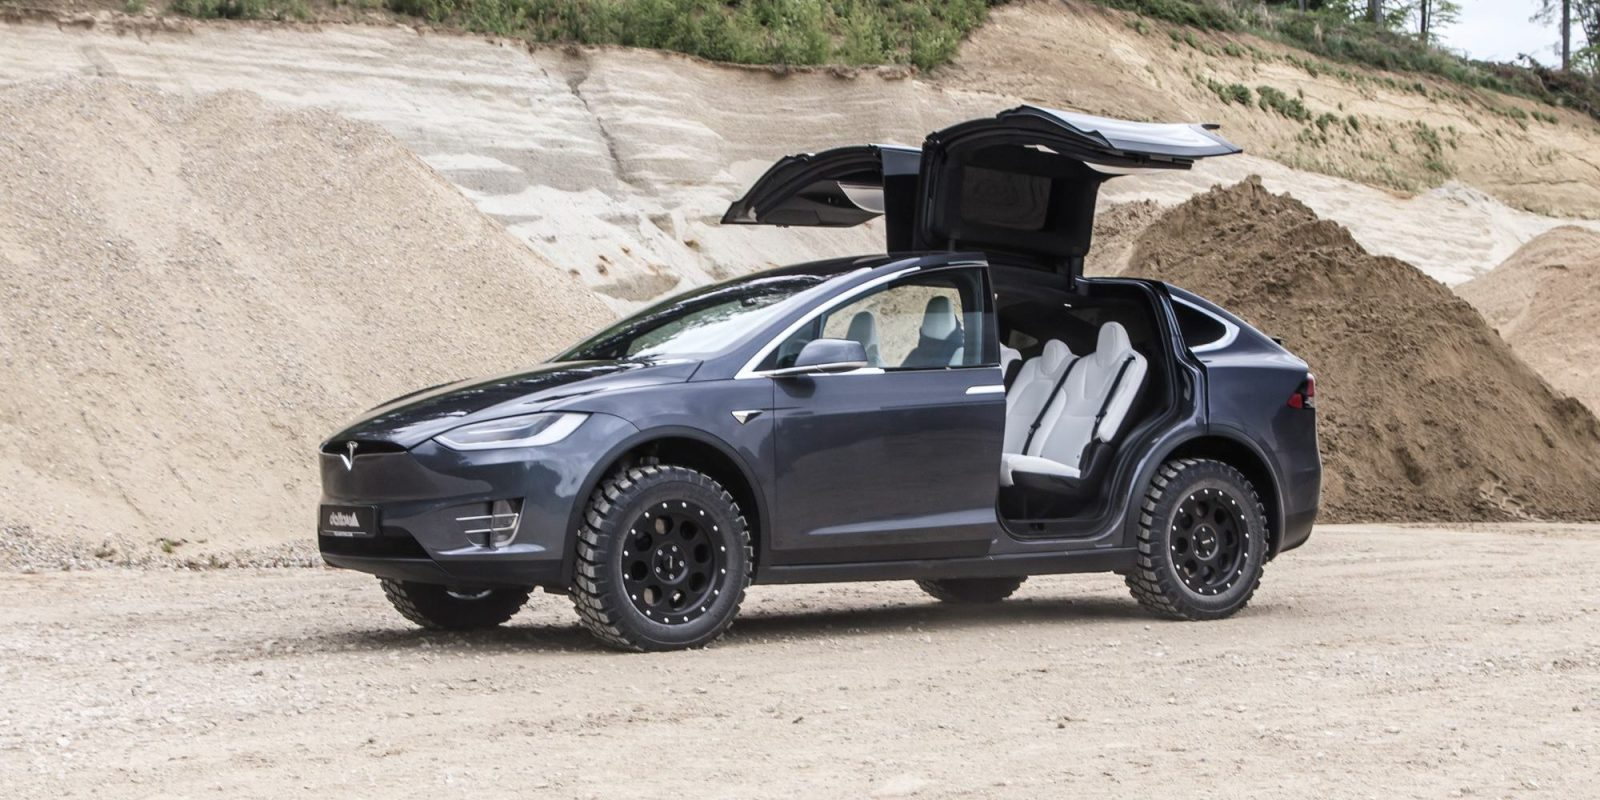 Off Road Tires For Trucks >> Tesla Model X Gets Off Road Treatment With Giant Mud Tires